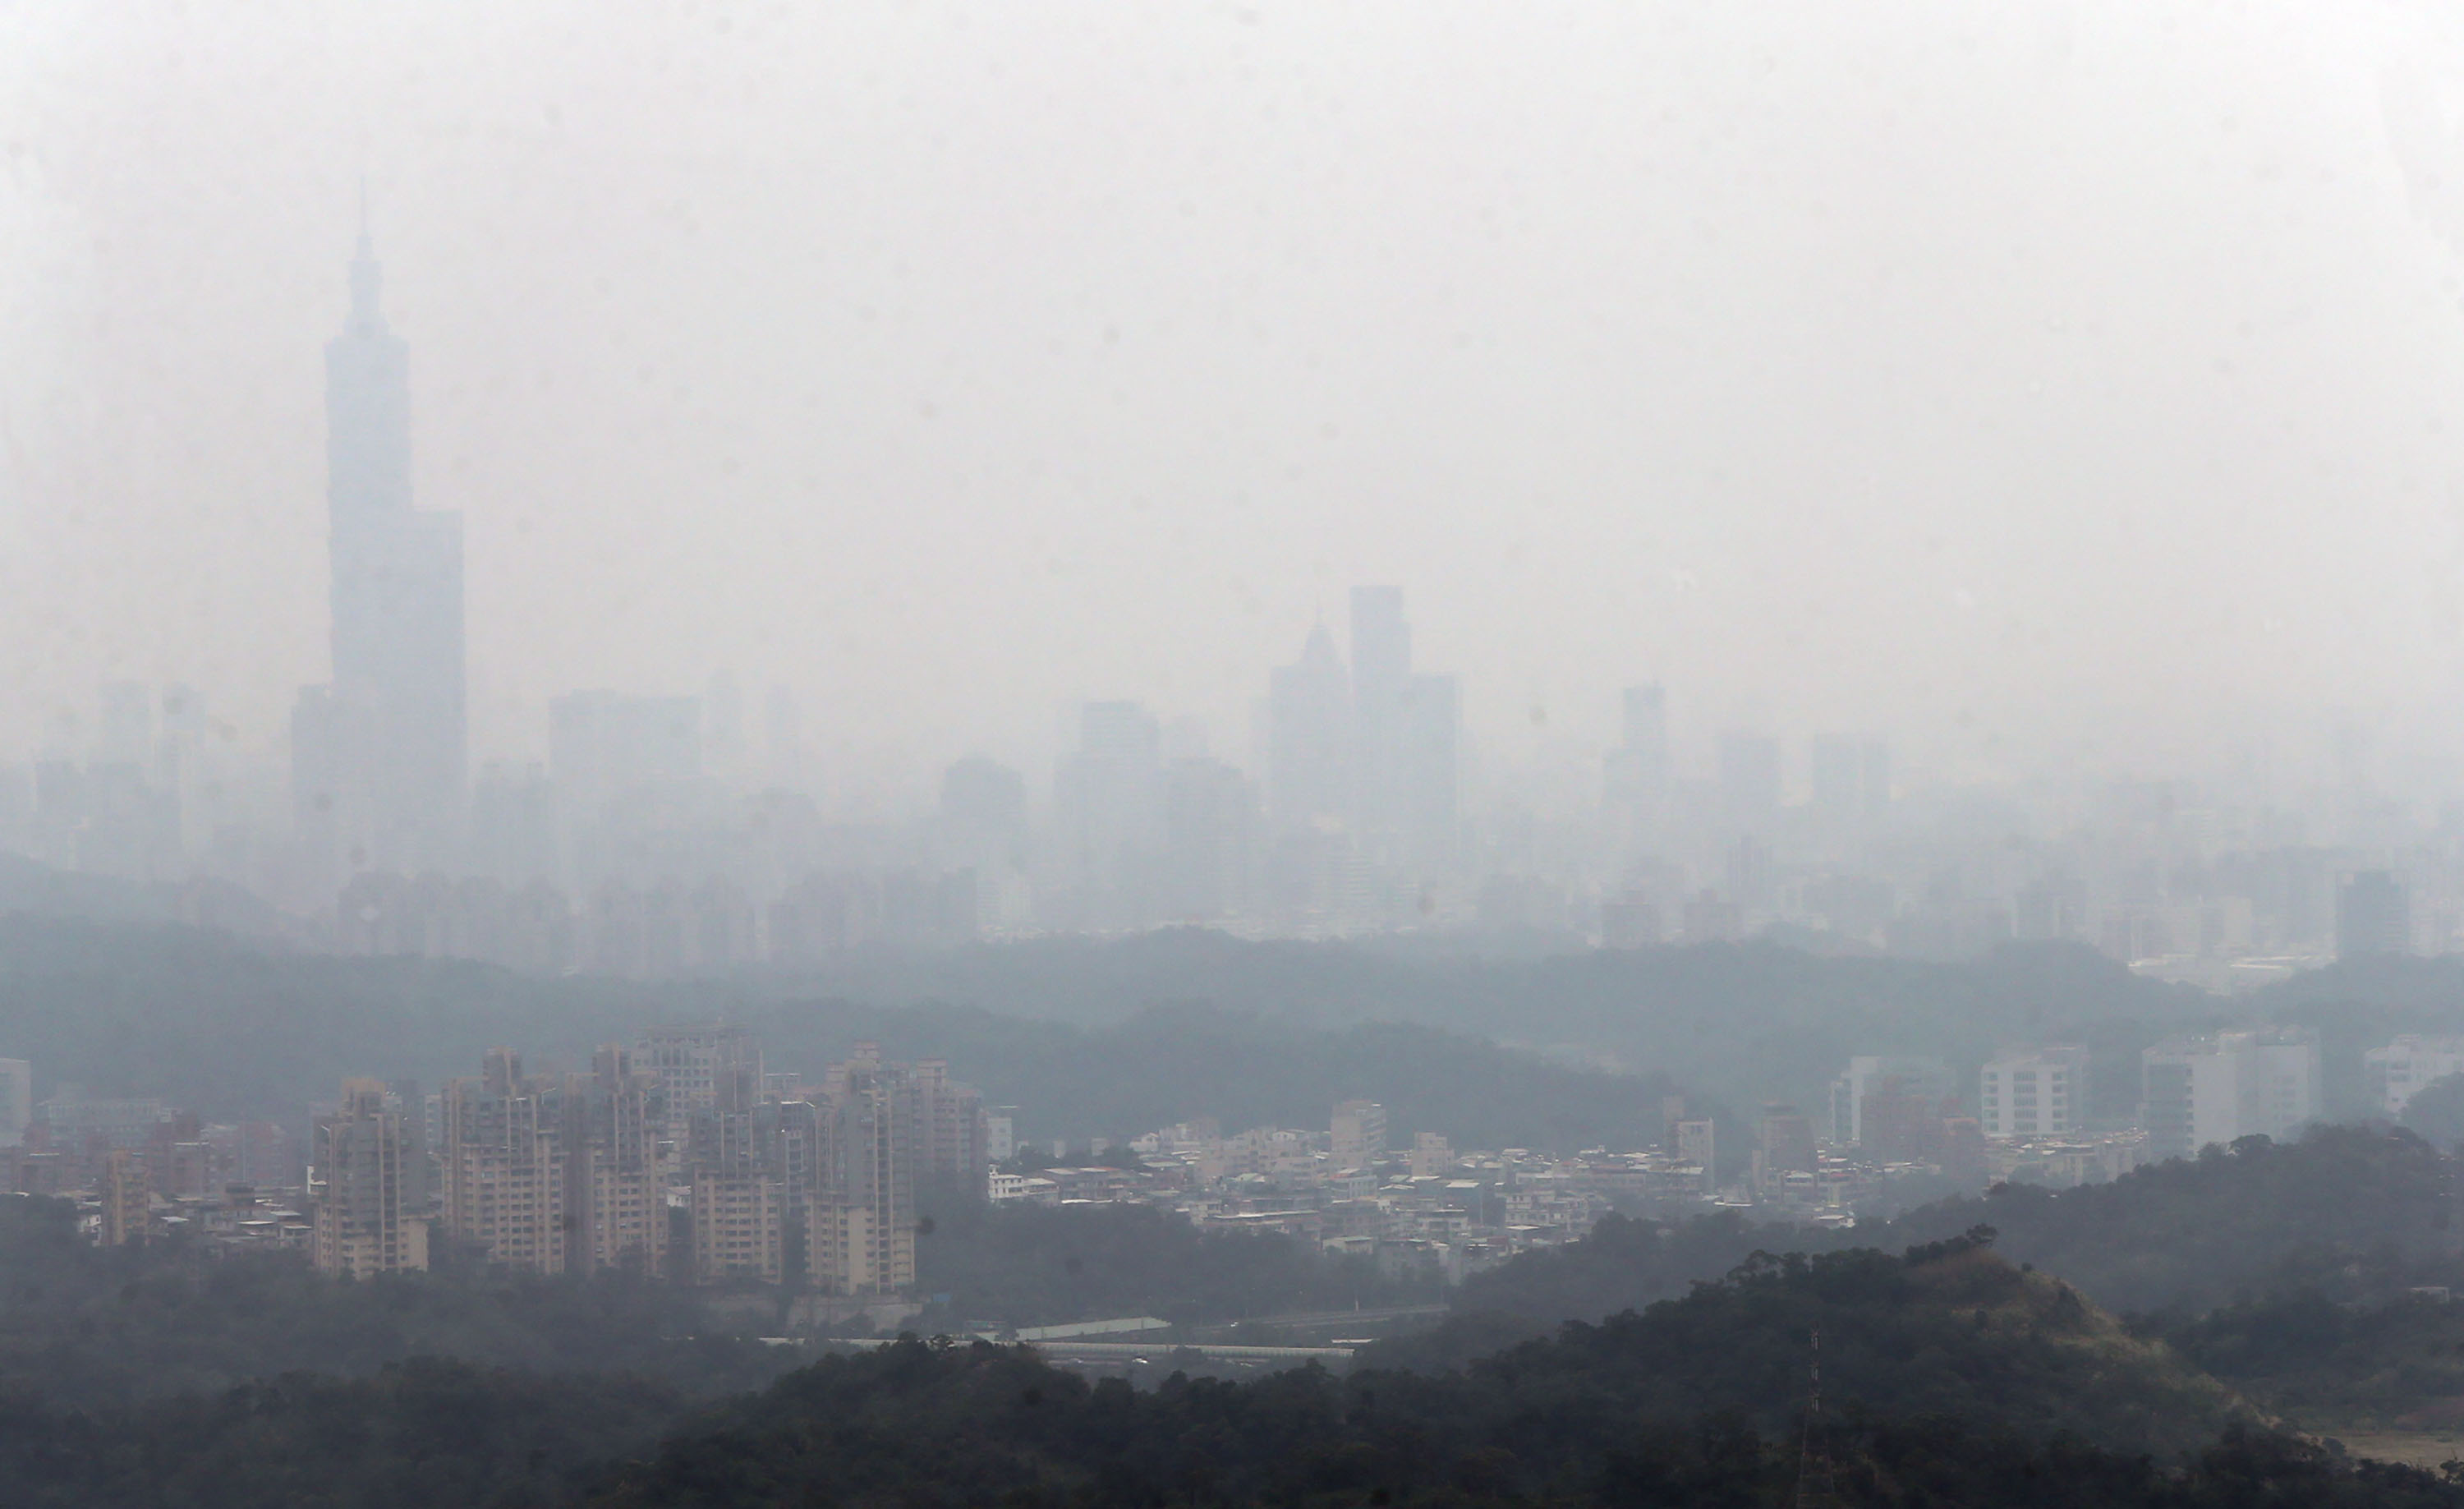 Taipei skyline on heavily polluted day.